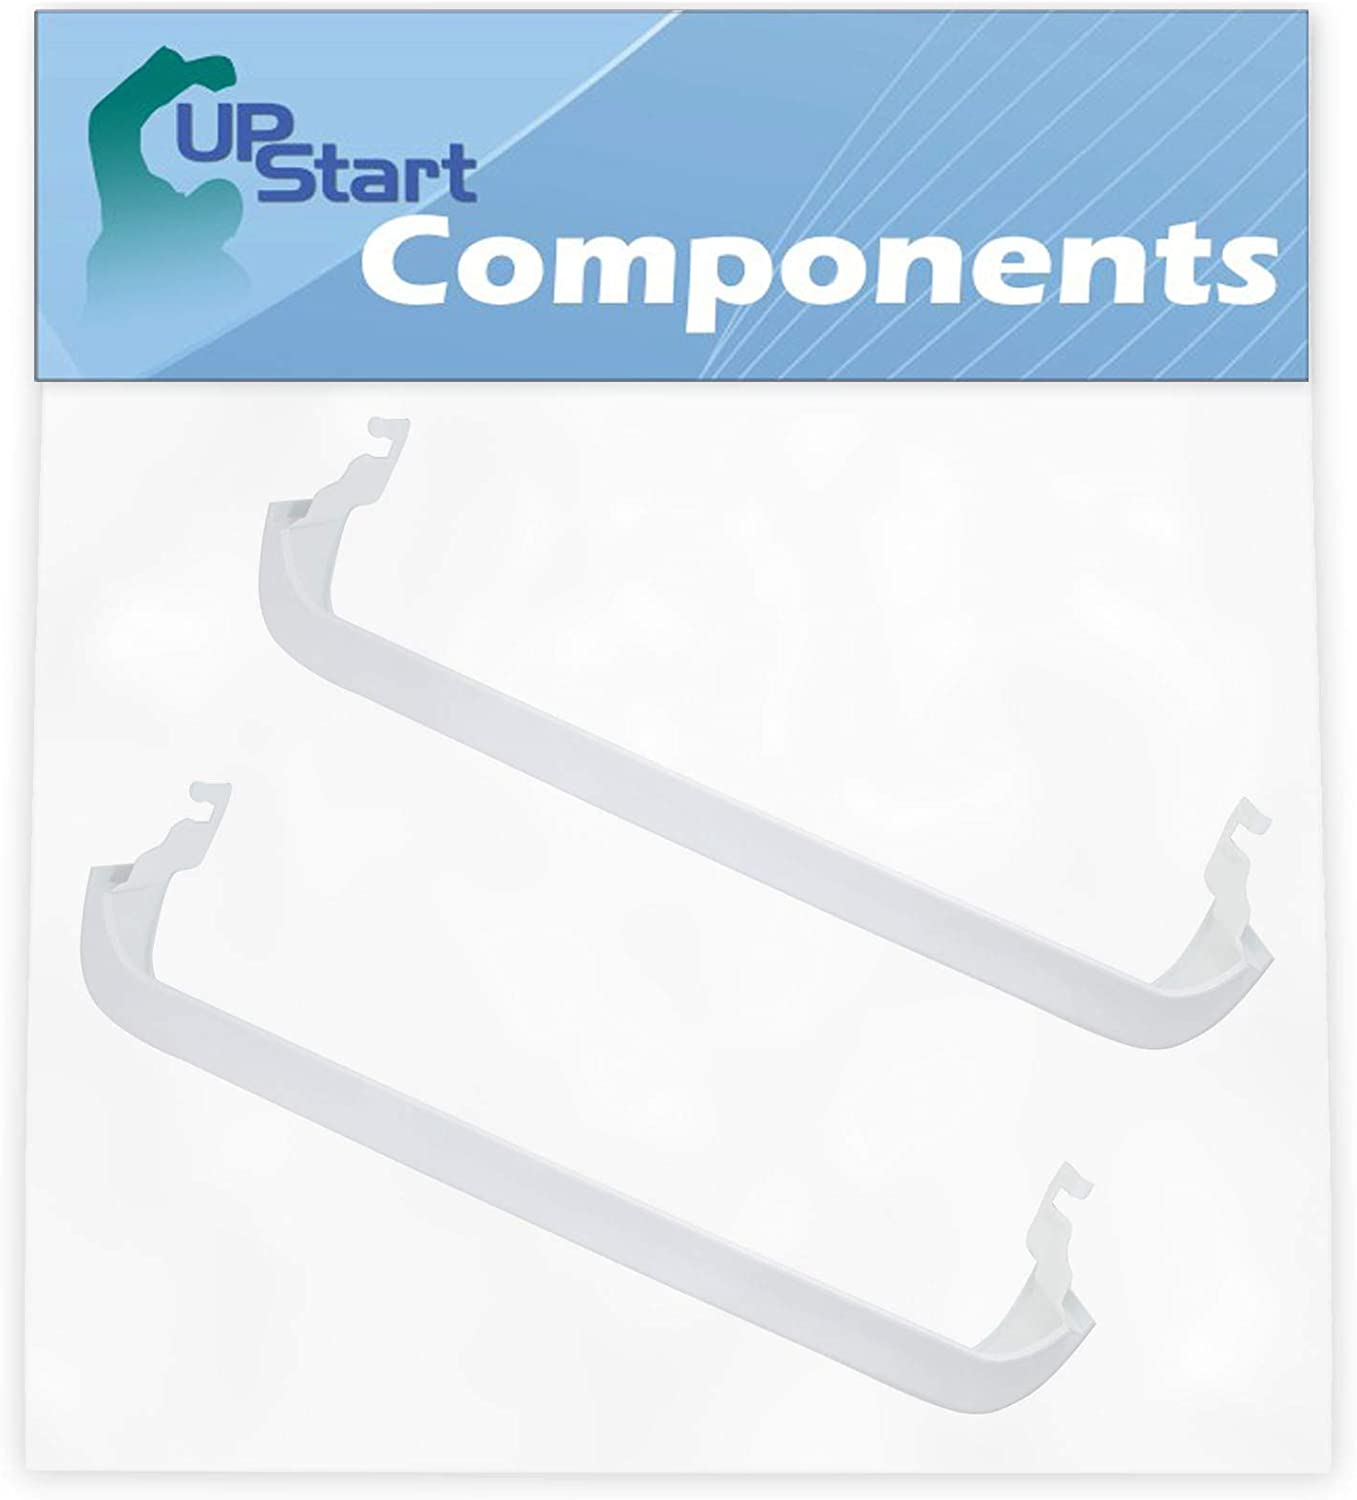 2-Pack 240338001 Refrigerator Door Bin Shelf Replacement for Kenmore/Sears 253.60819710 Refrigerator - Compatible with AP2115859 Door Bin